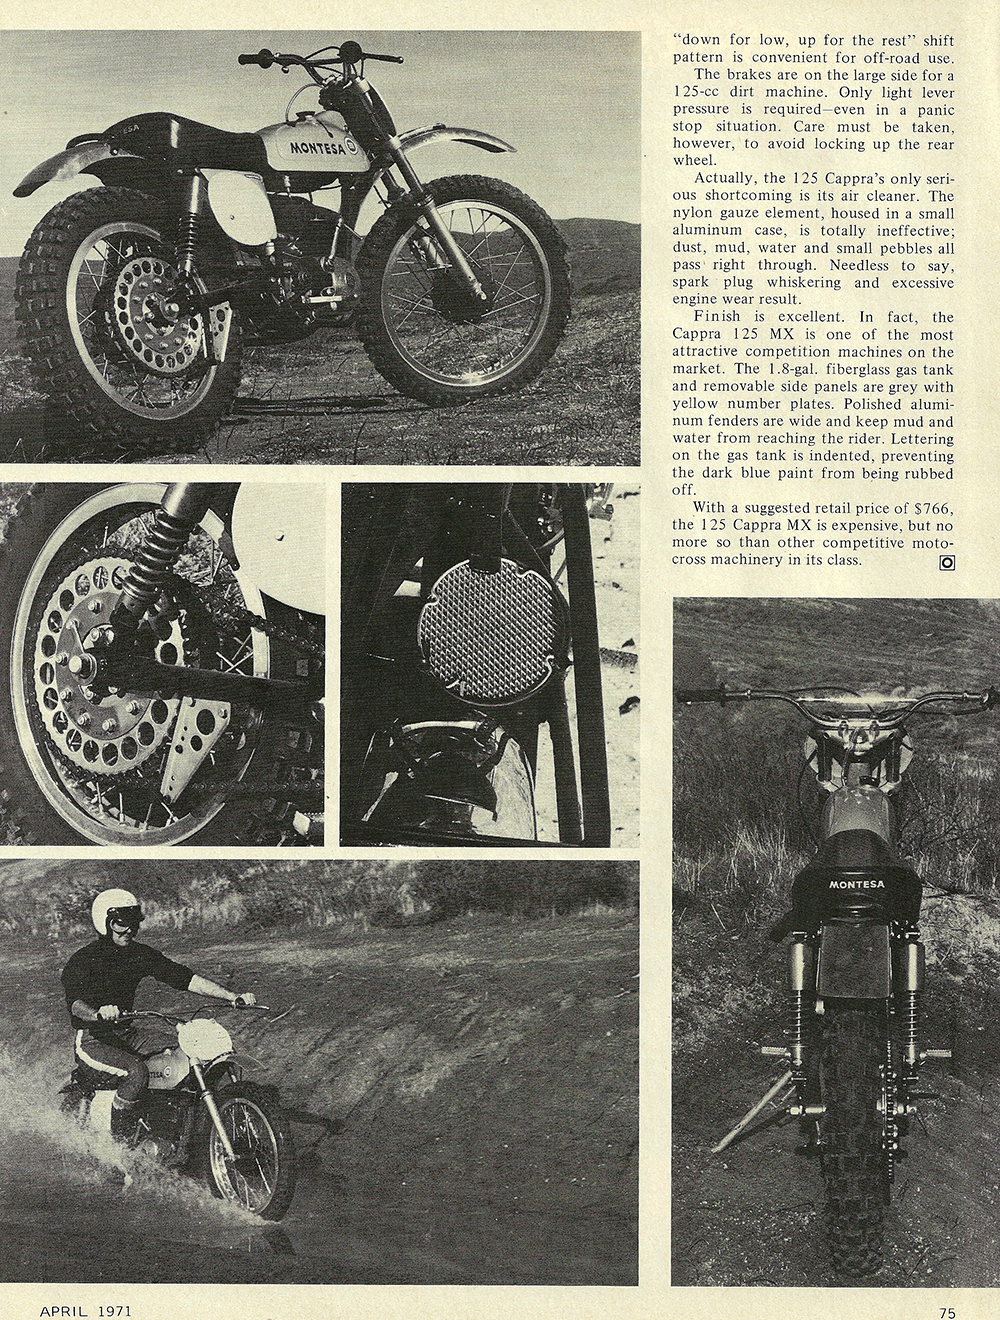 1971 Montesa Cappra 125 MX impression 02.jpg